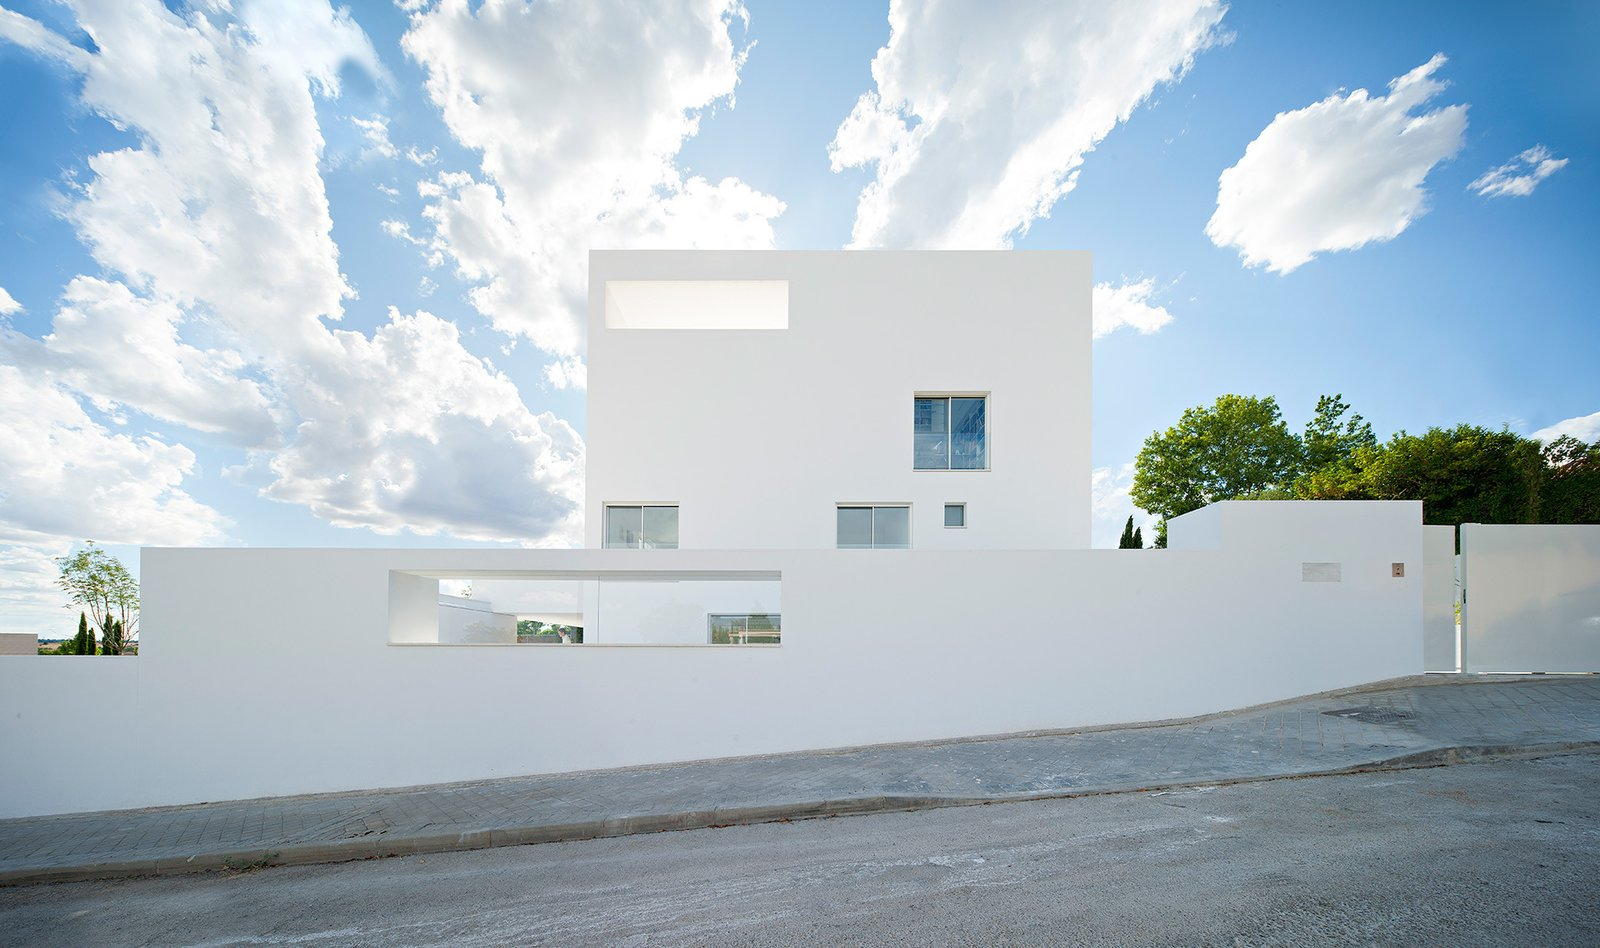 Photo 4 of 6 in Raumplan House by Alberto Campo Baeza